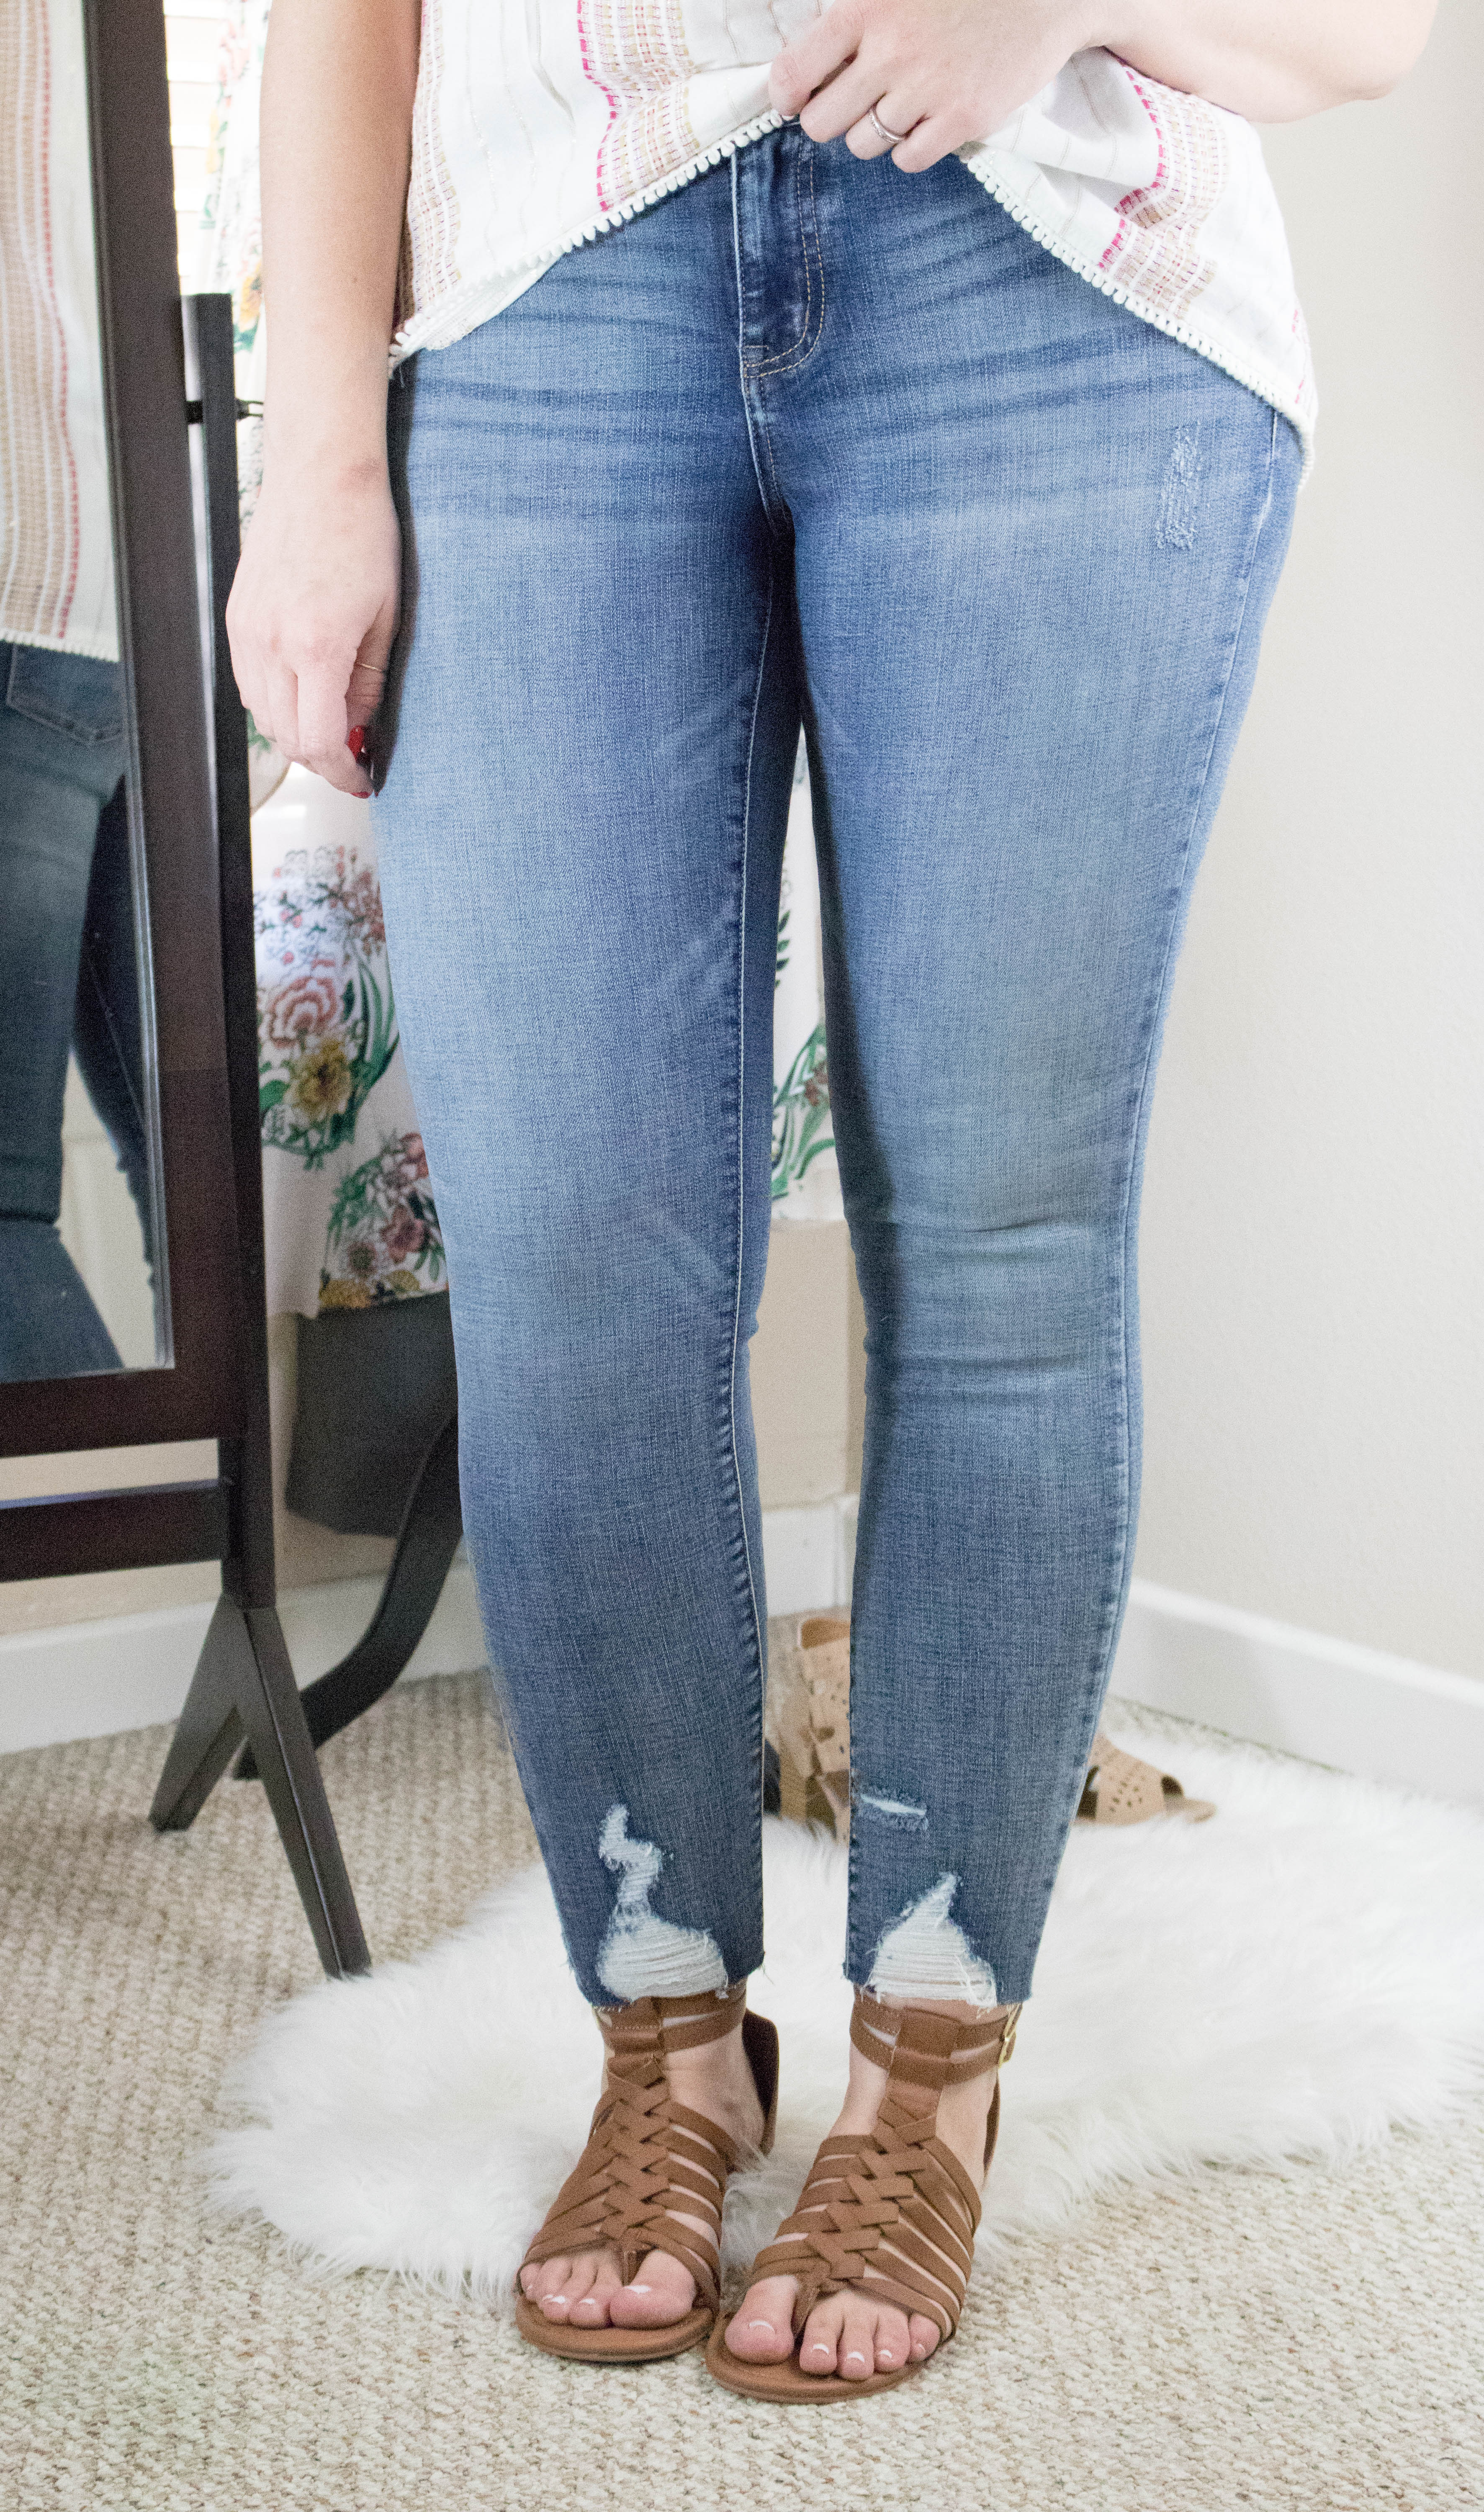 distressed denim maurices #distresseddenim #skinnyjeans #outfitdetails